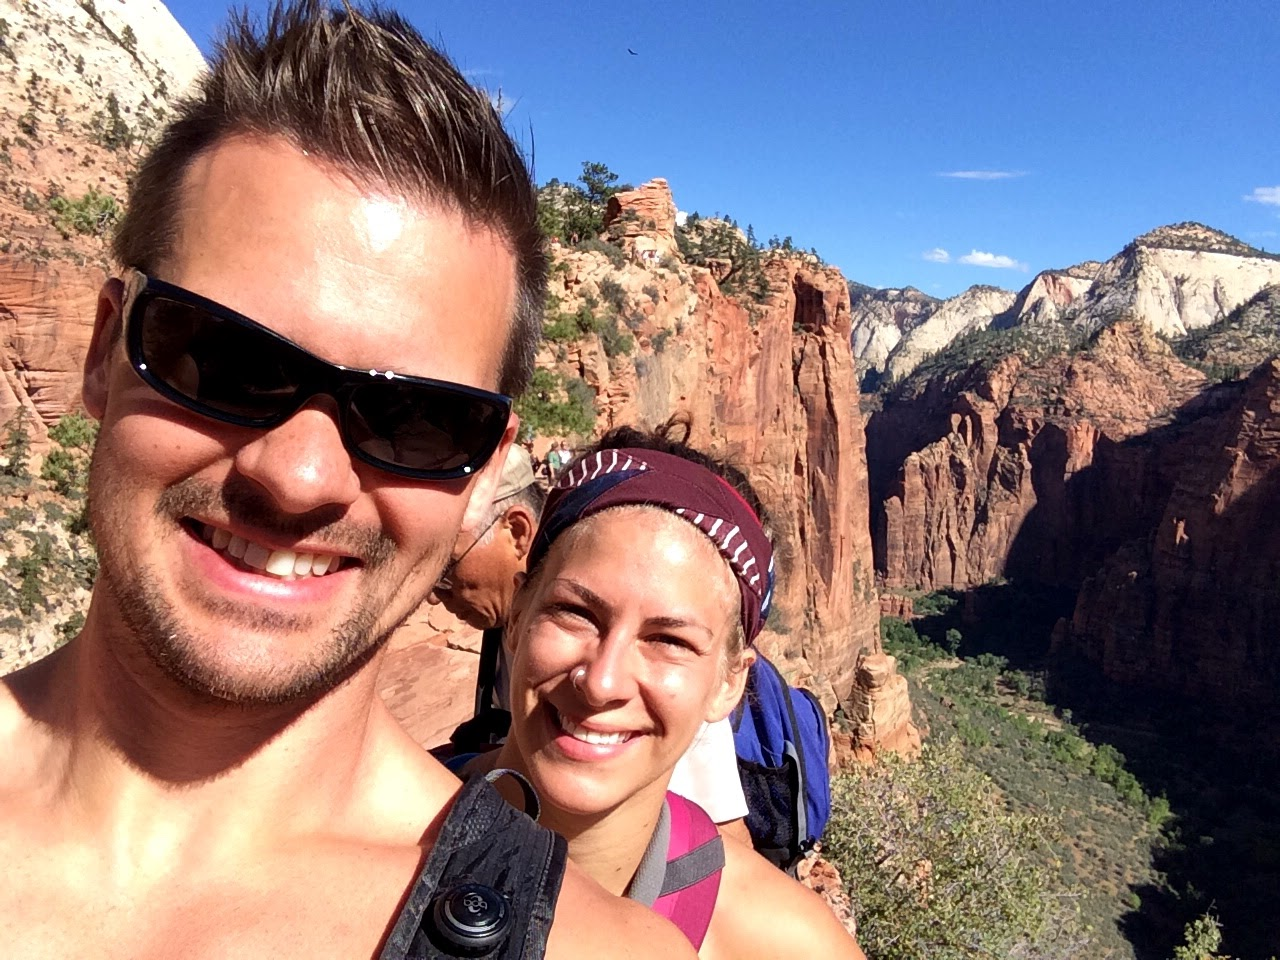 Joe & Emily hiking up the crazy Angel's landing in Zion National park